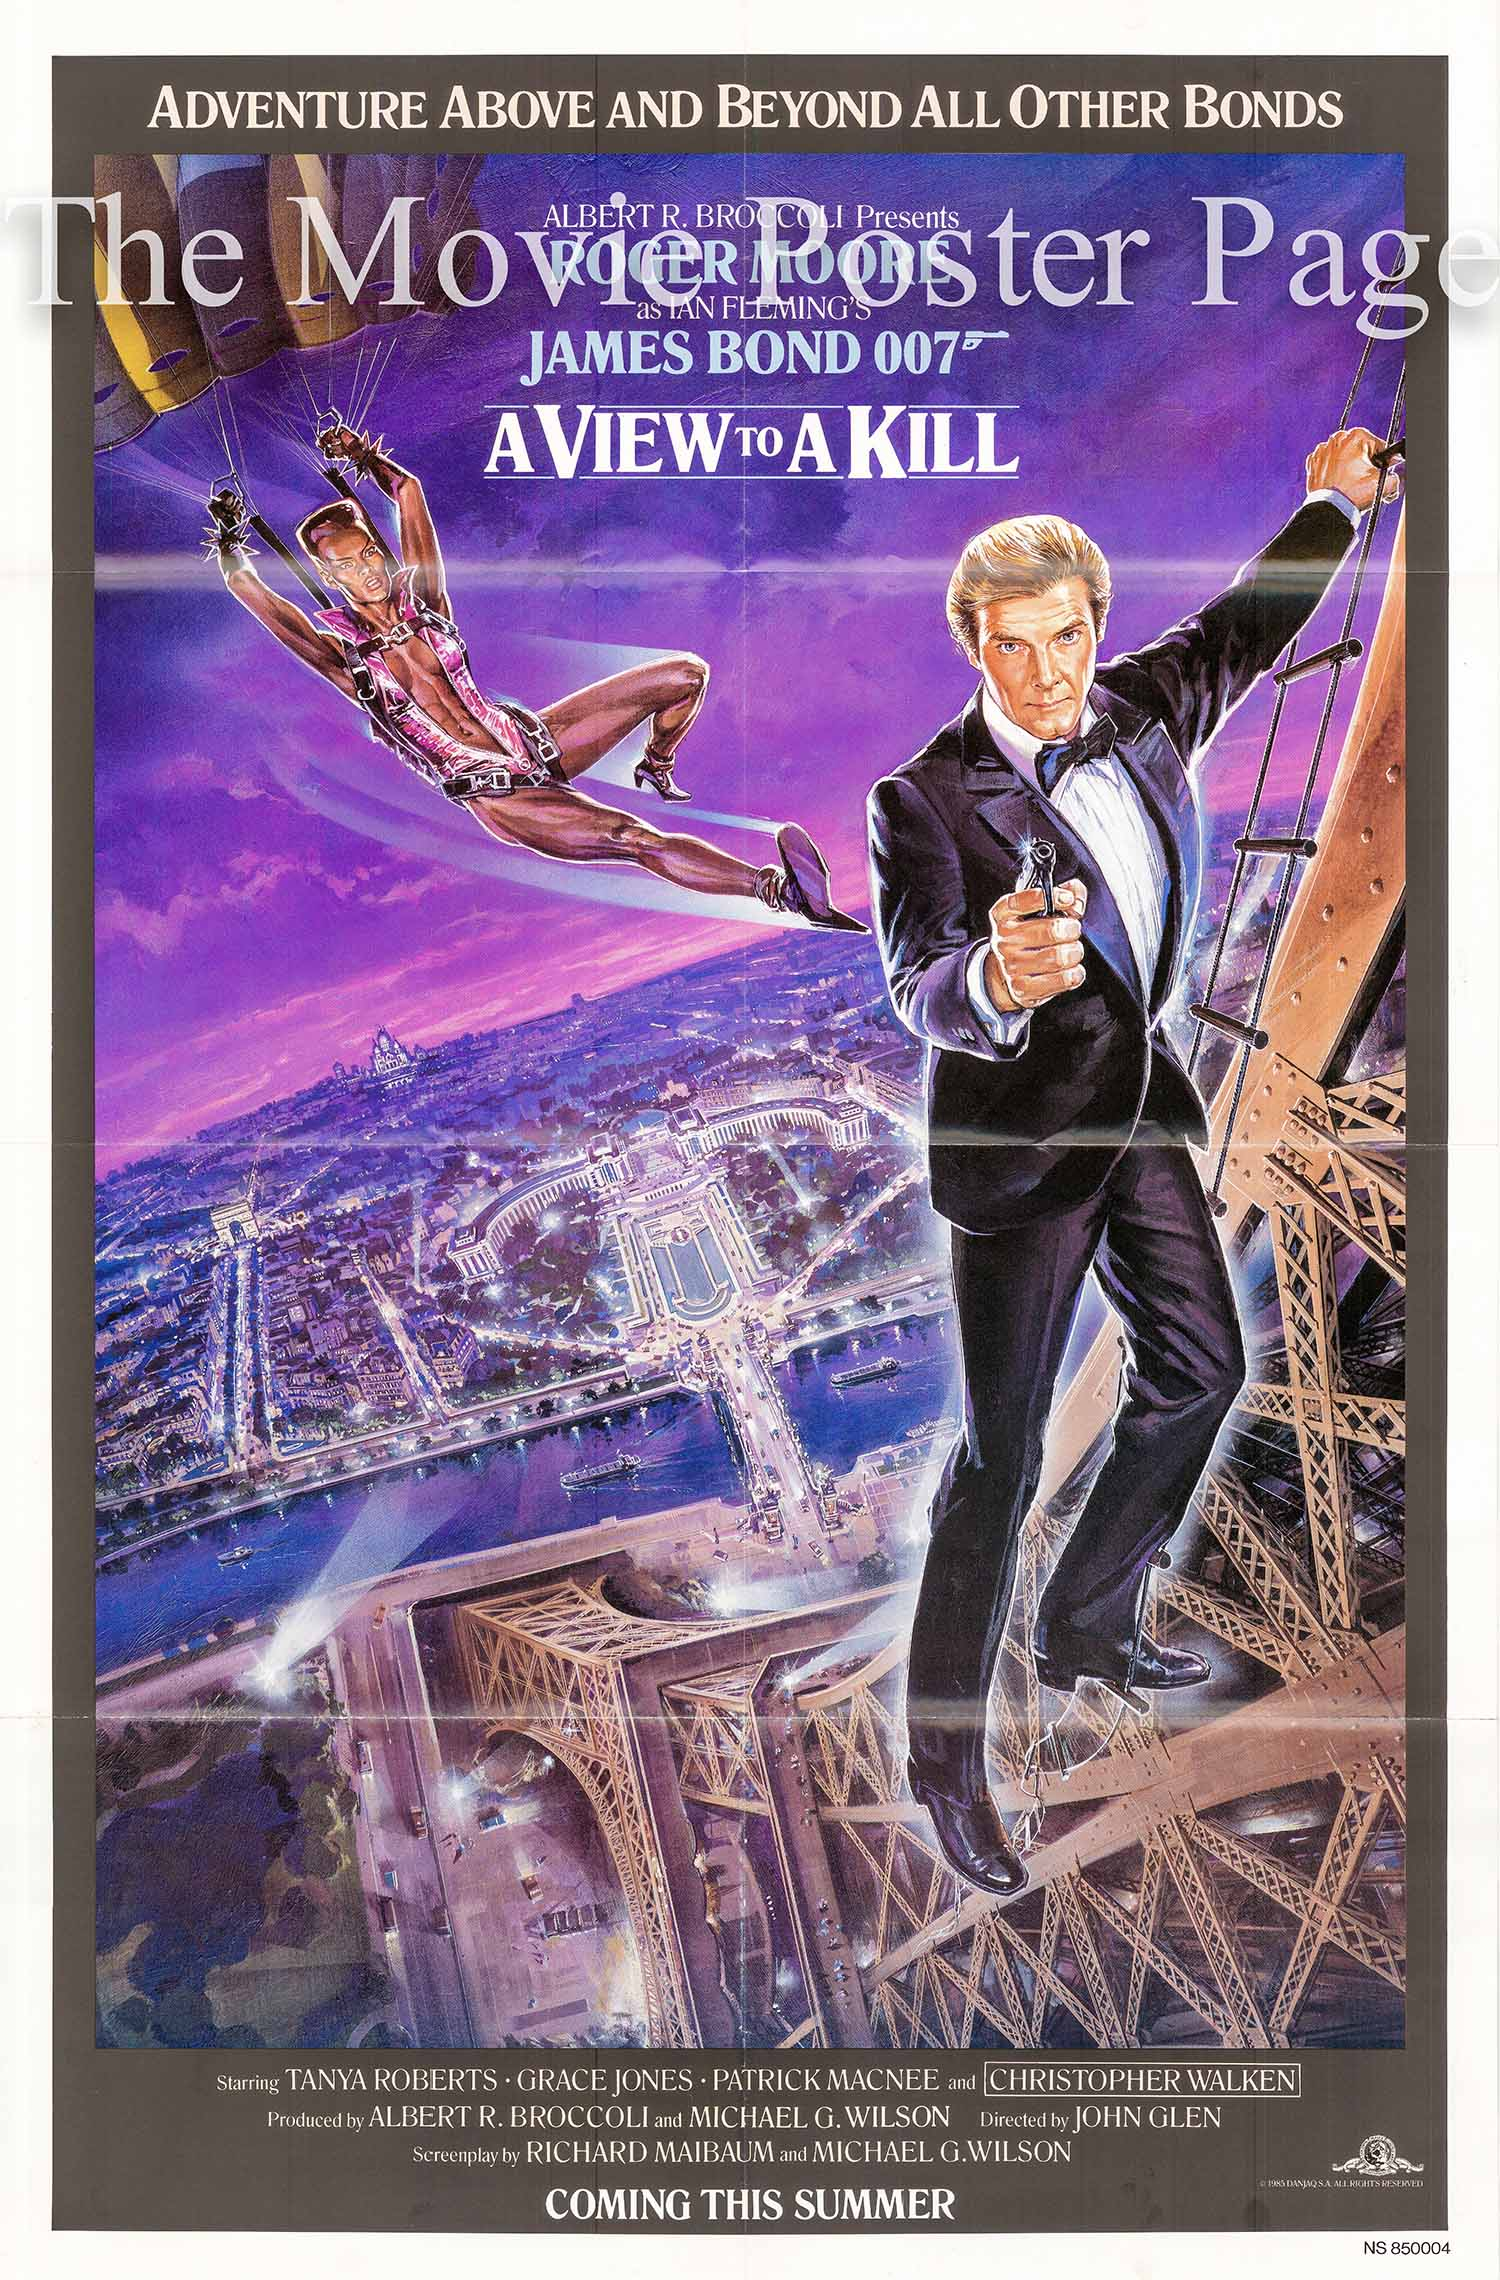 Pictured is a US Eiffel Tower advance one-sheet for the 1985 John Glen film A View to a Kill starring Roger Moore as James Bond.